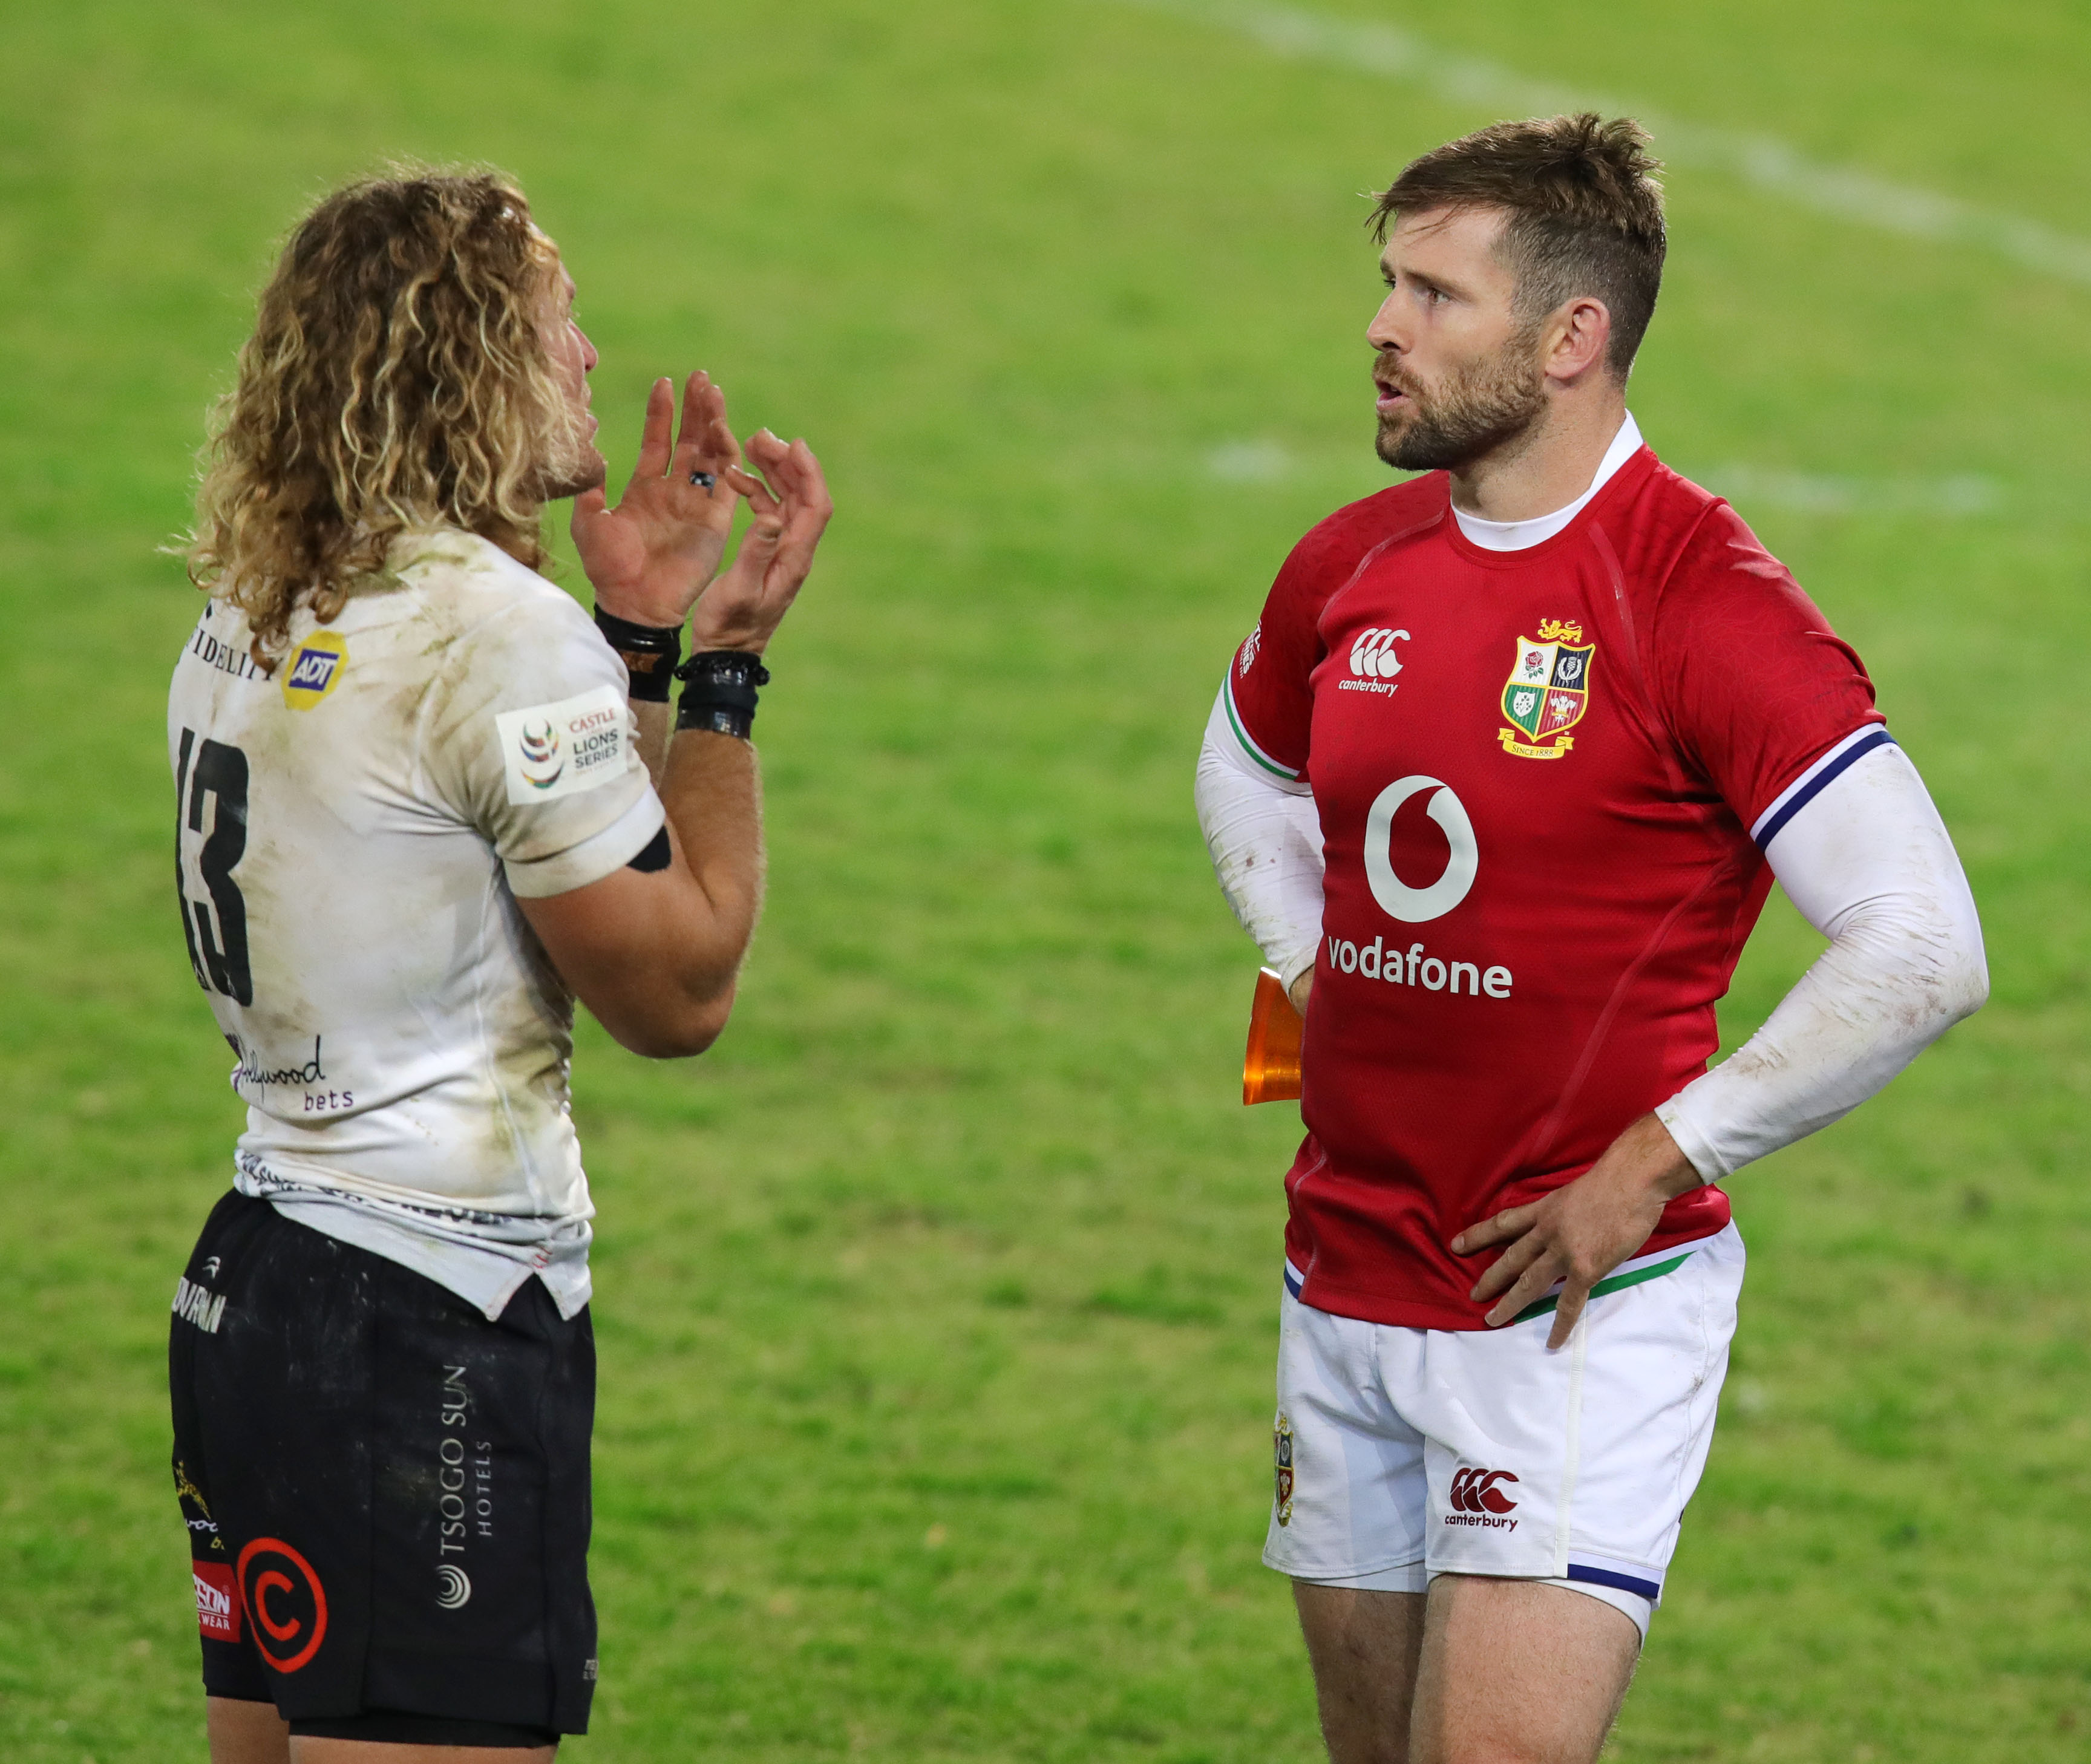 Werner Kok of the Sharks (l) with Elliot Daly of the BI Lions during the 2021 British and Irish Lions Tour rugby match between the Sharks and BI Lions at Loftus Stadium, Pretoria on 10 July 2021 ©Muzi Ntombela/BackpagePix